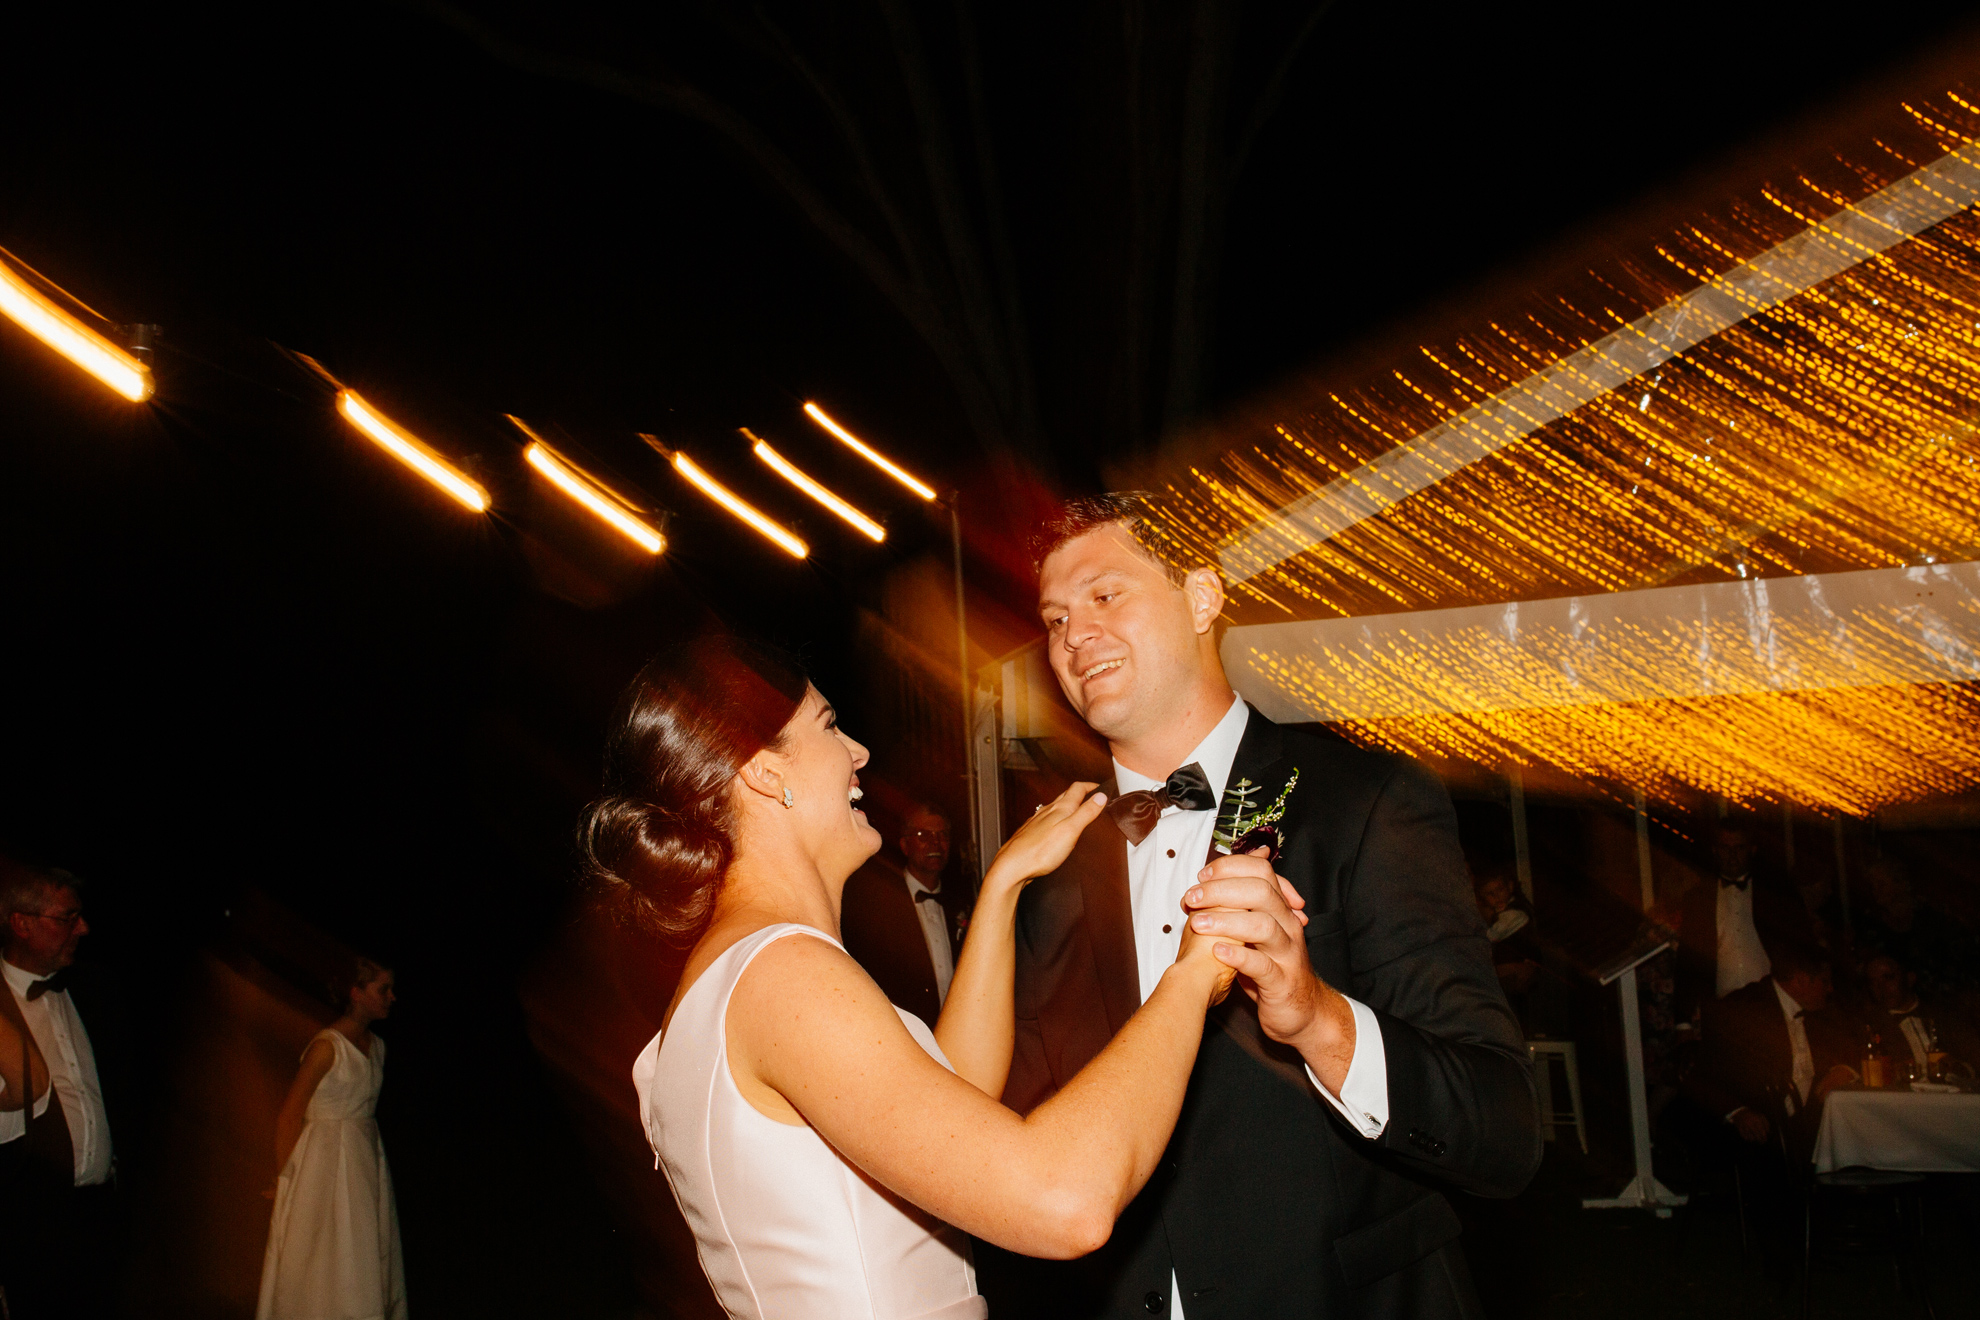 092-Chloe_Joe_Rockhampton_Wedding.jpg